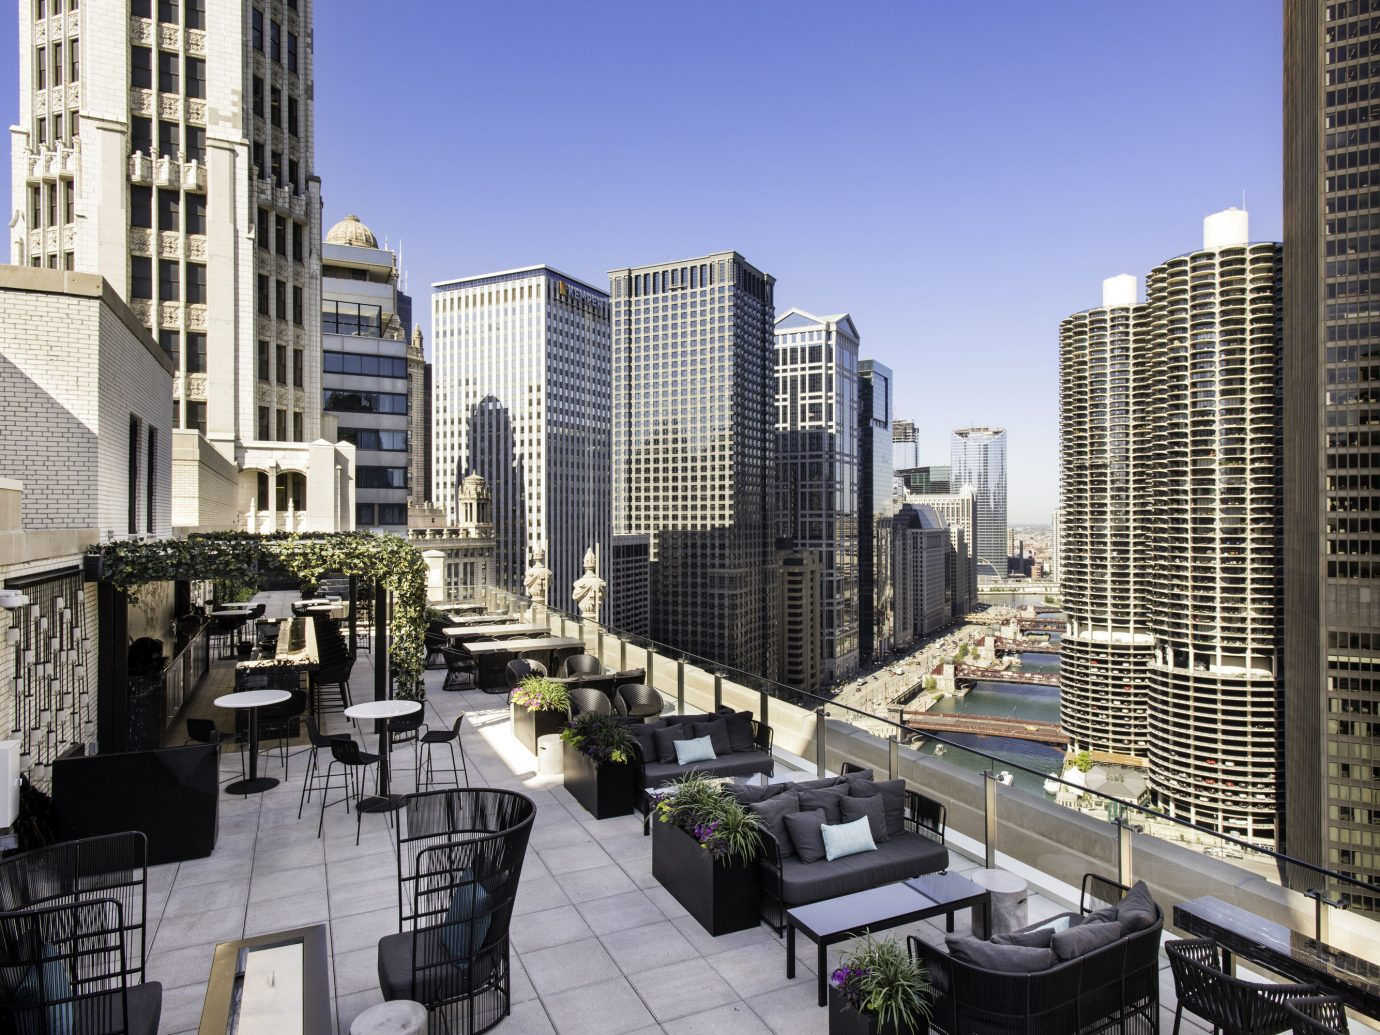 Patio view at LondonHouse Chicago, Curio Collection by Hilton